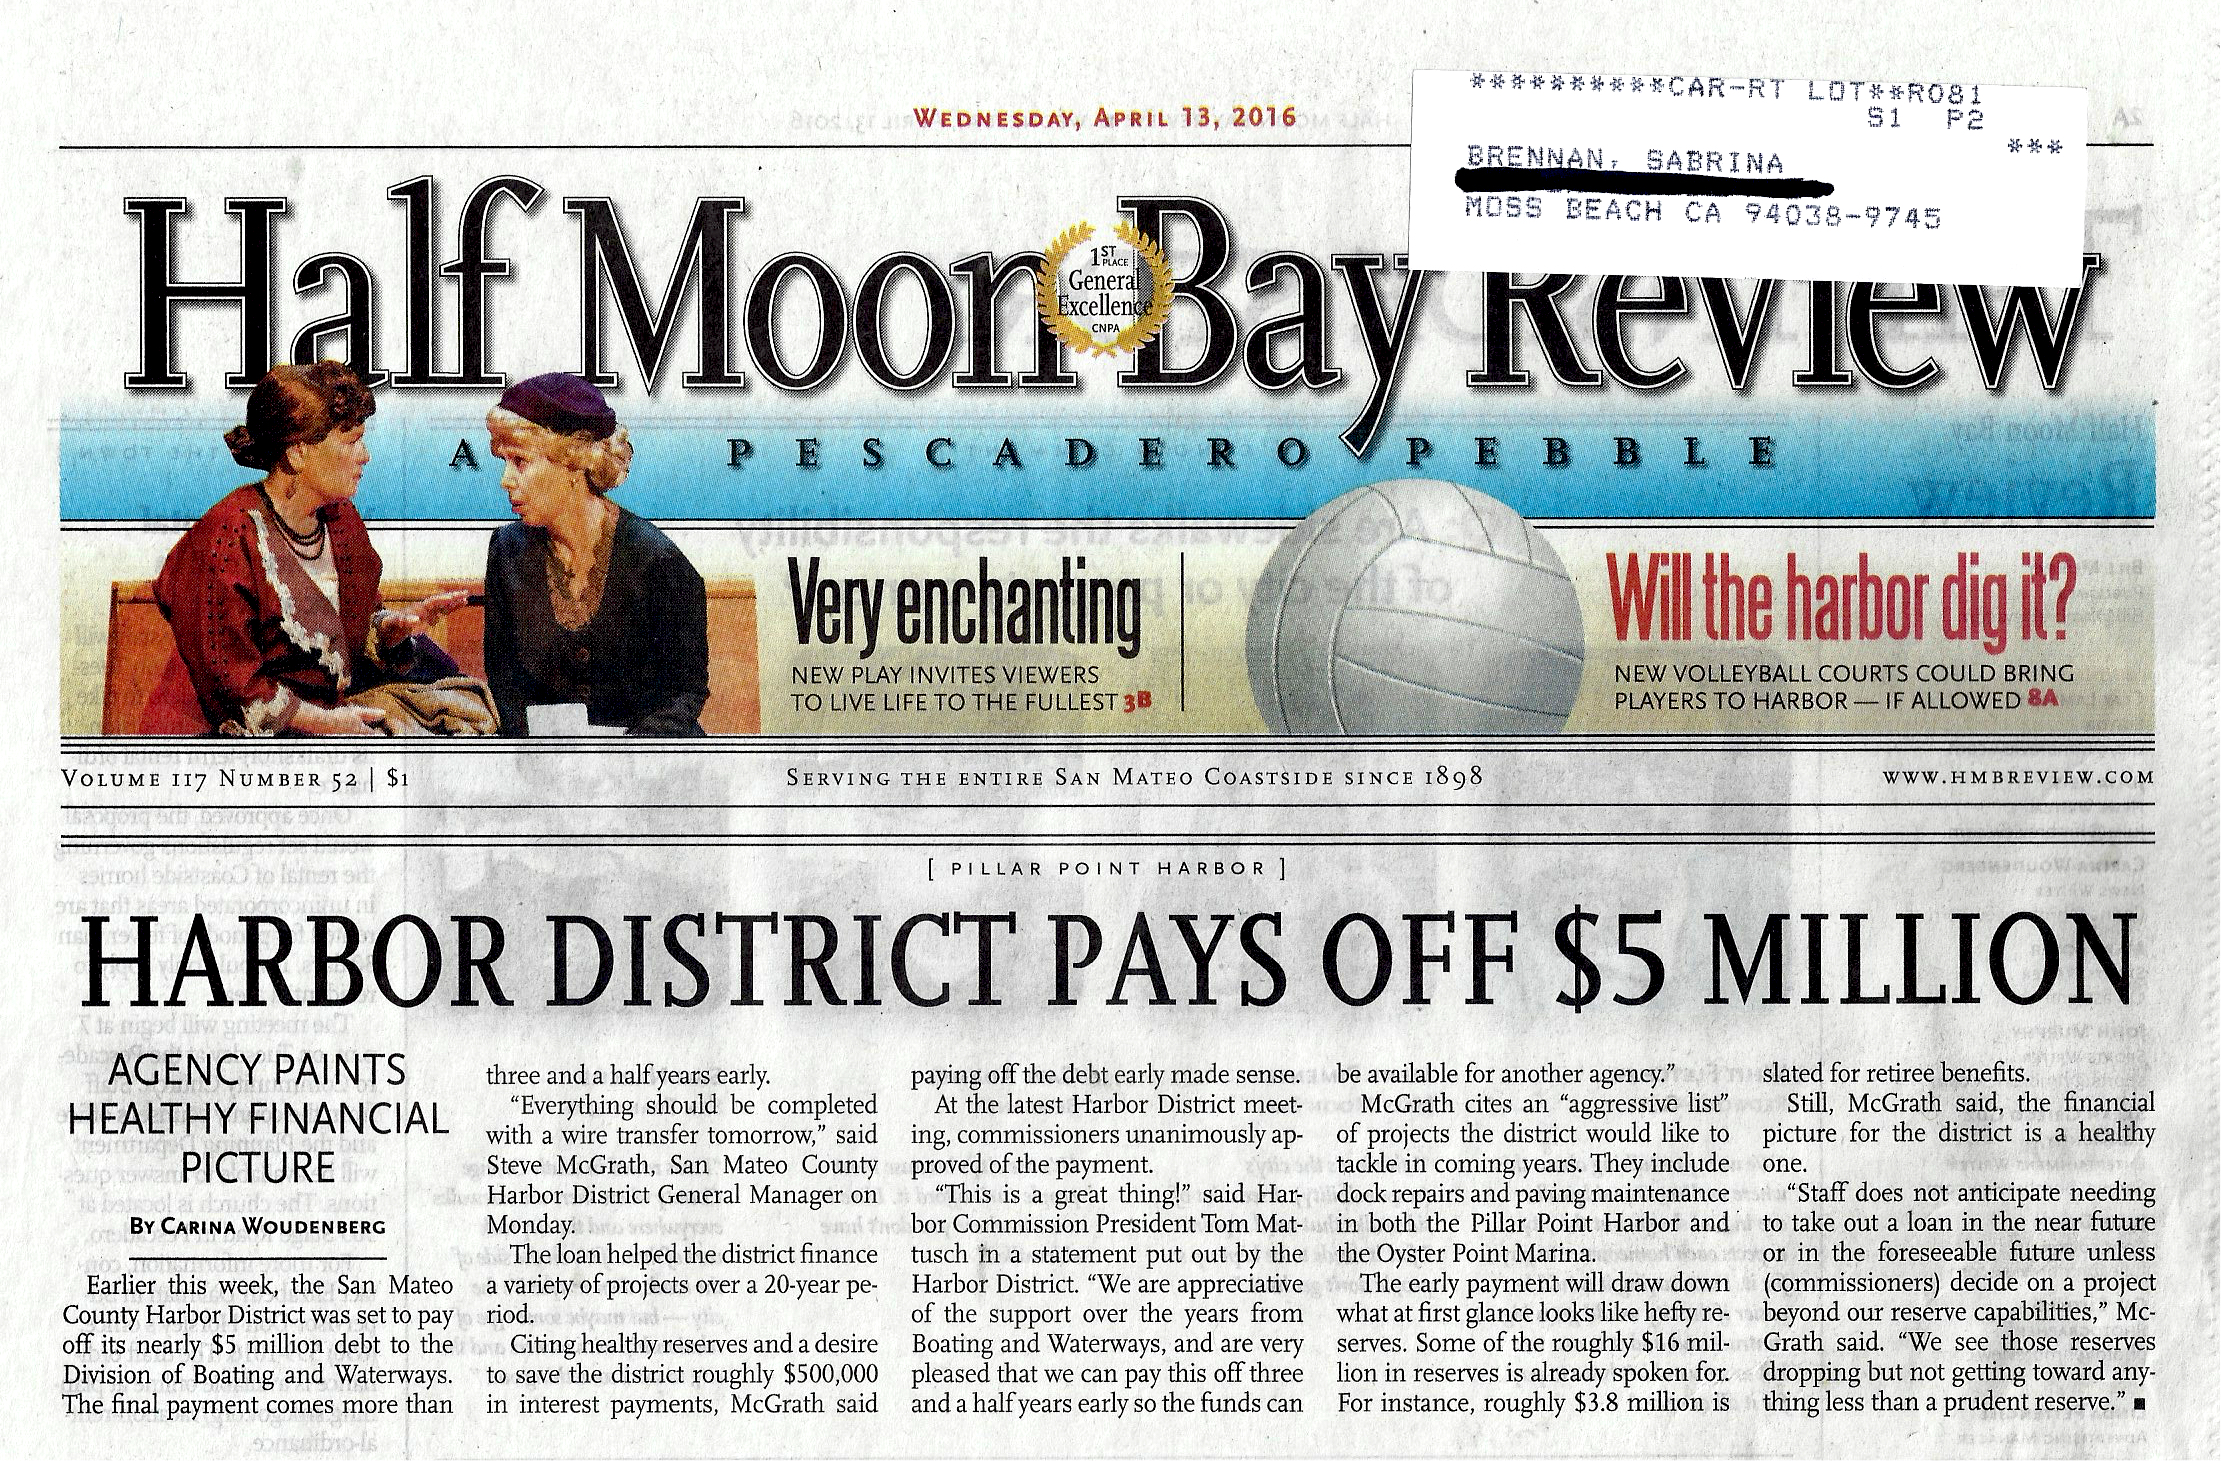 Harbor District Five Million Debt Payoff